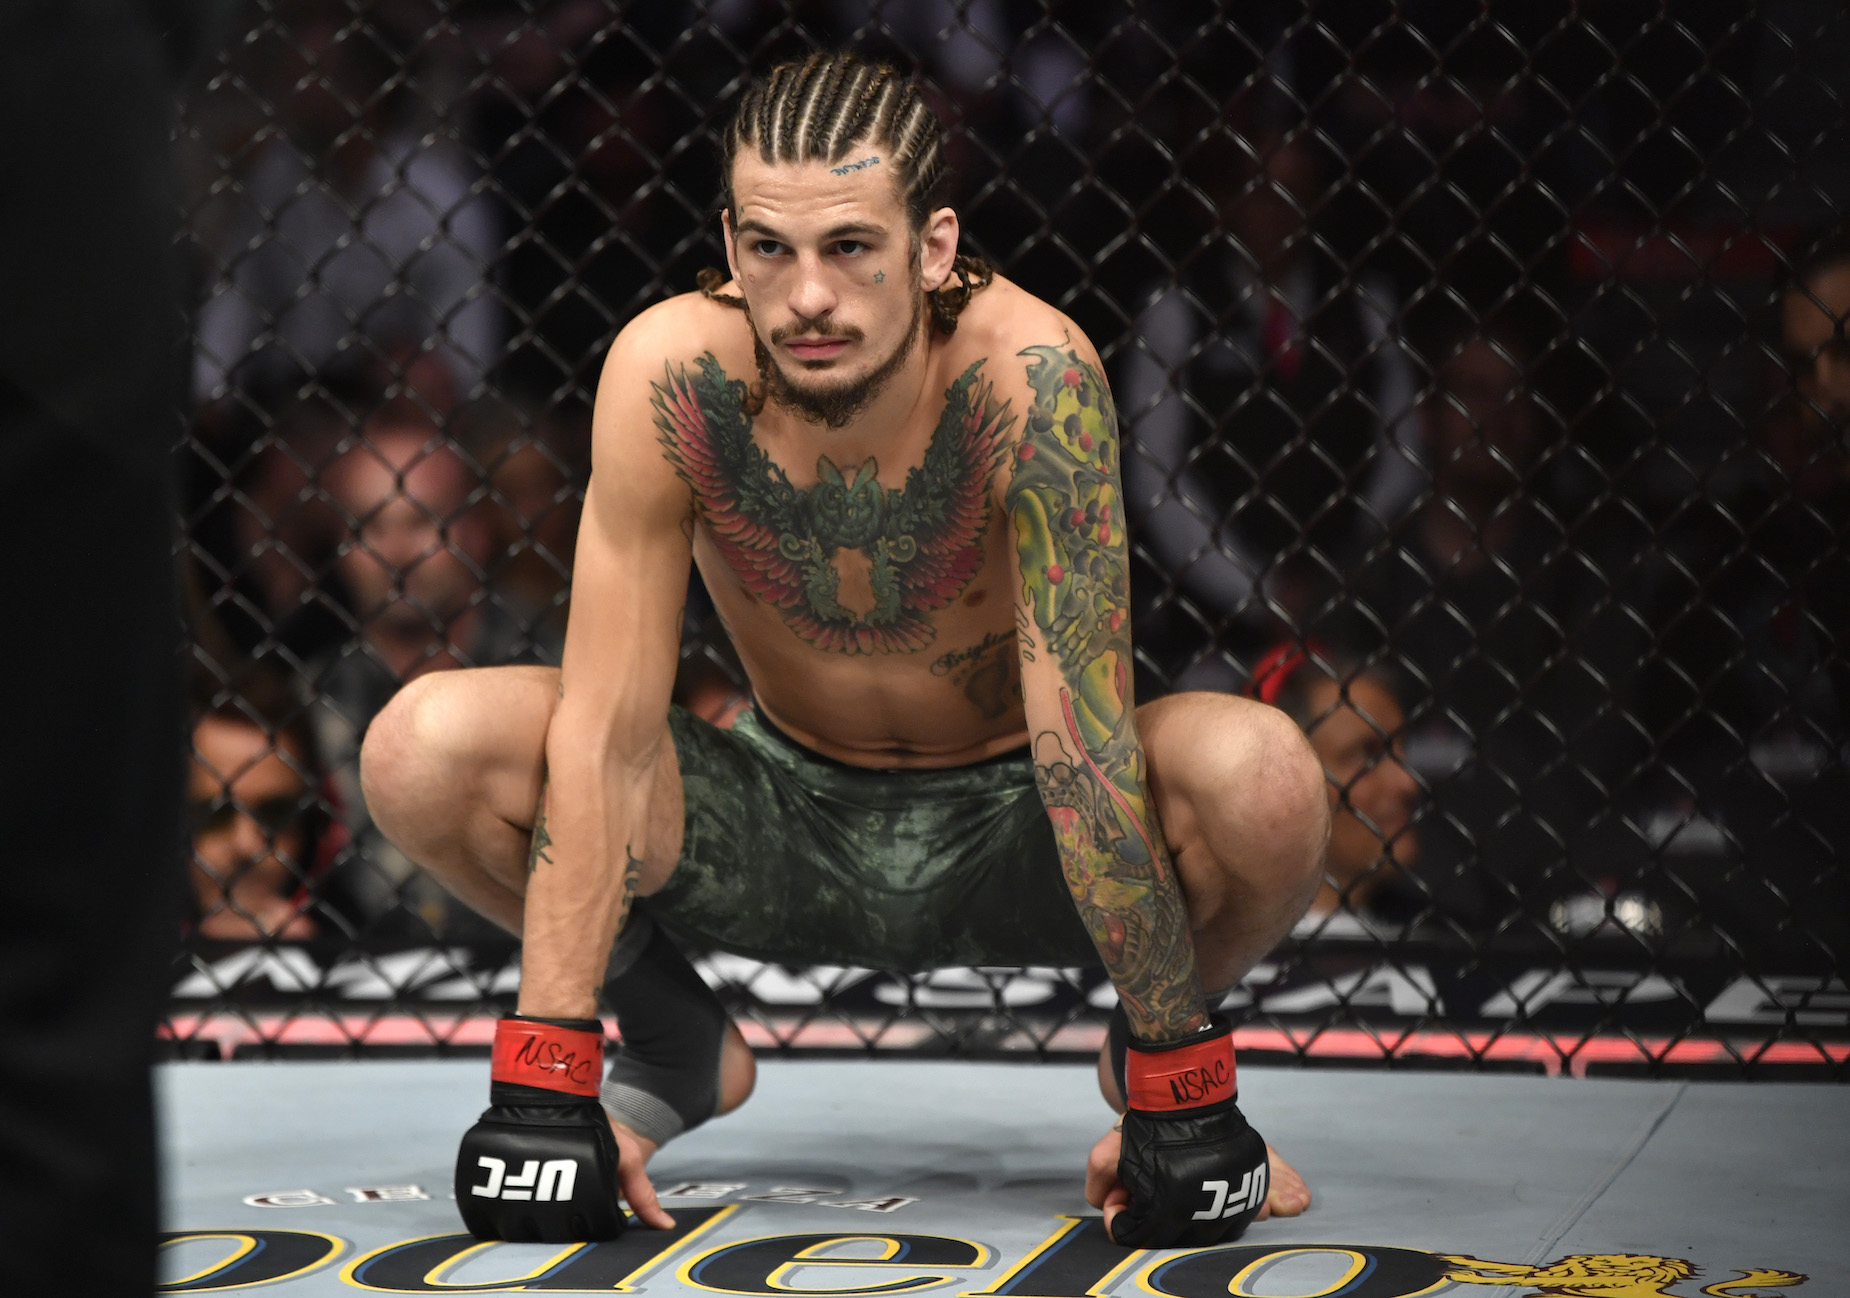 Sean O'Malley might be using his hair to play mind games with Marlon Vera.